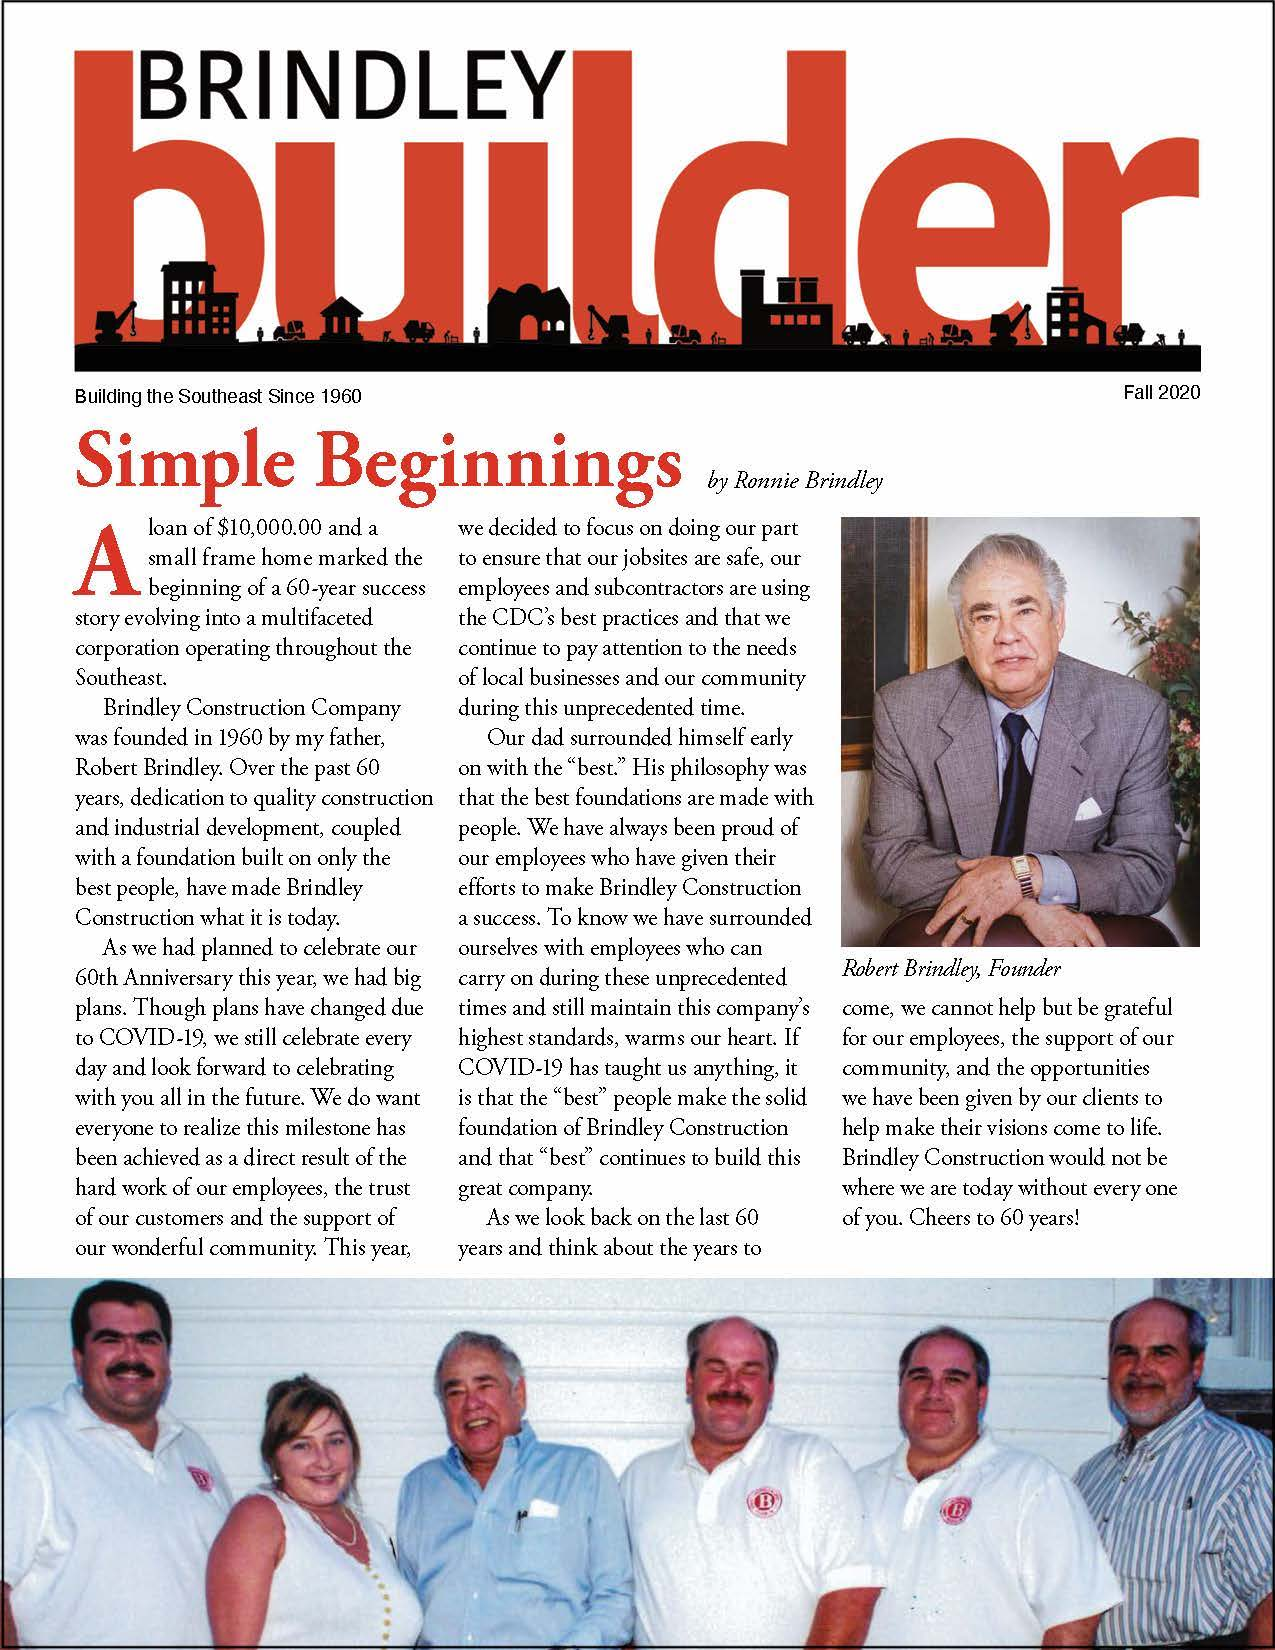 The Brindley Builder | Fall 2020 Issue | Brindley Construction